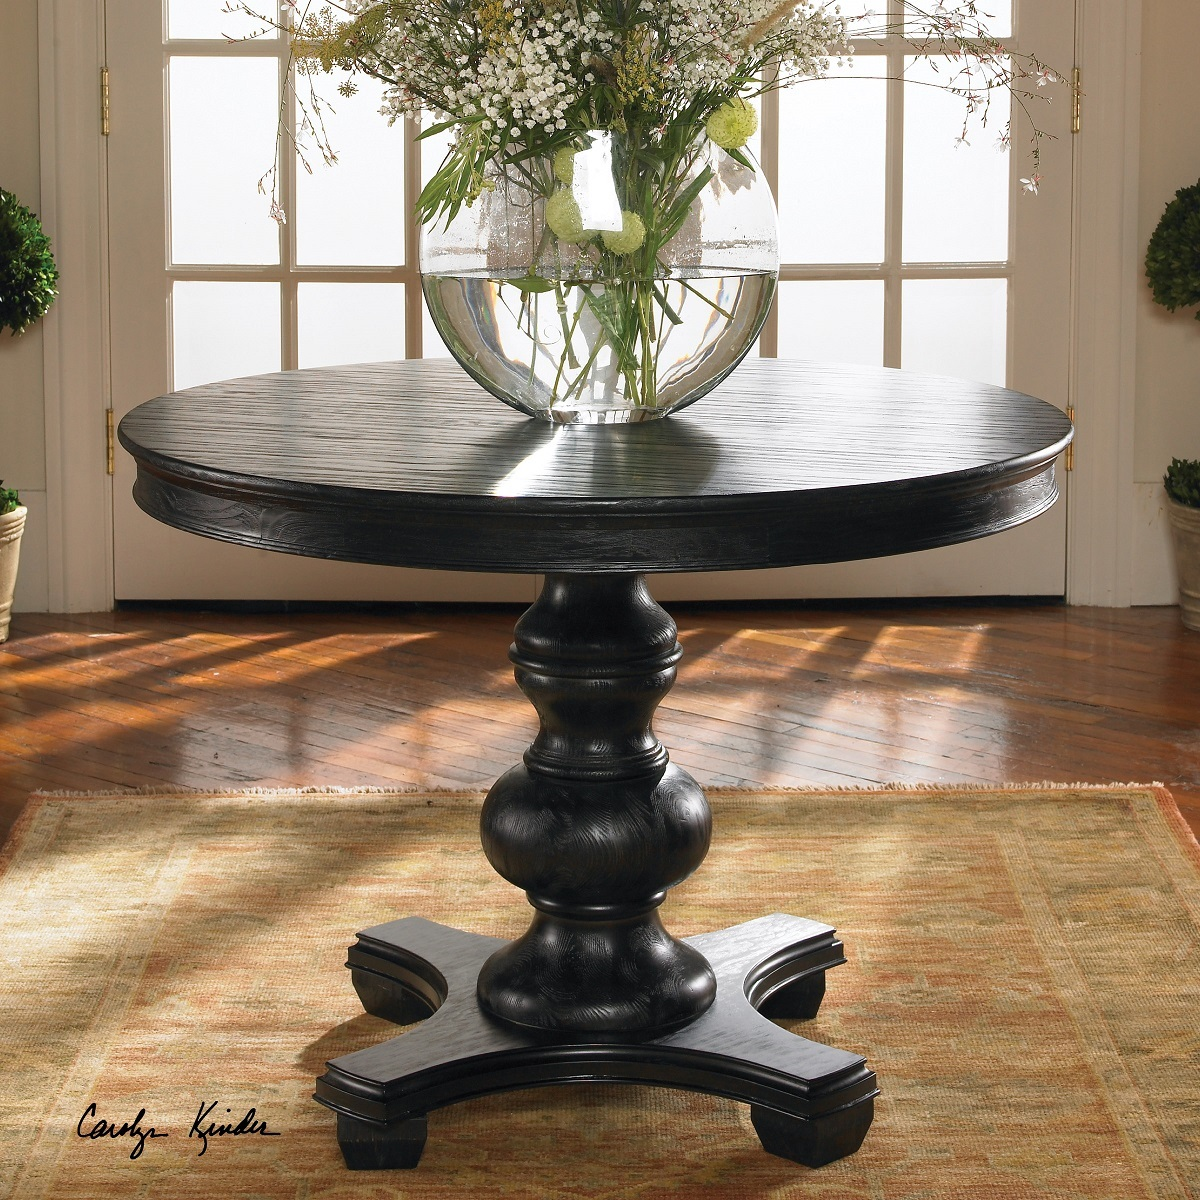 brynmore black round pedestal table zin home dining accent crystal glass lamp base furniture console cabinet small grey chair slim bedside ceramic outdoor side with wicker chairs